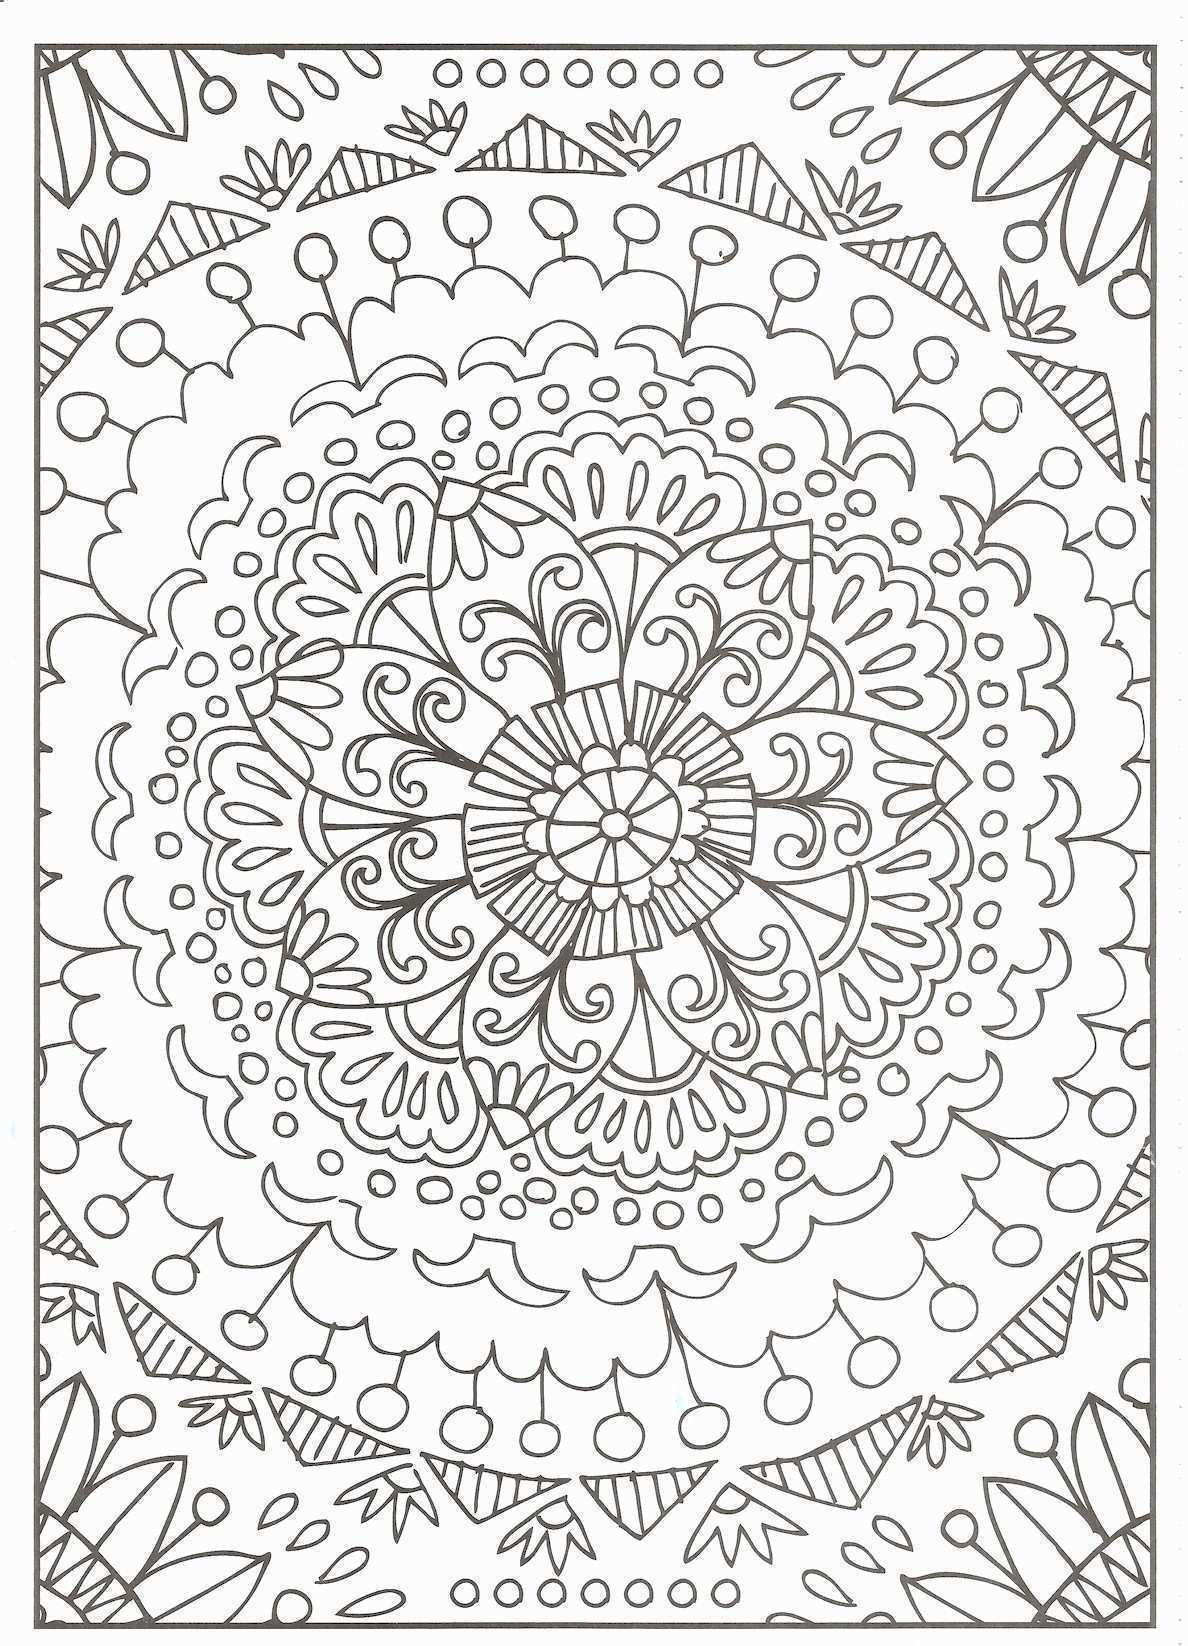 Coloring Pages Free to Print New Fresh S S Media Cache Ak0 Pinimg